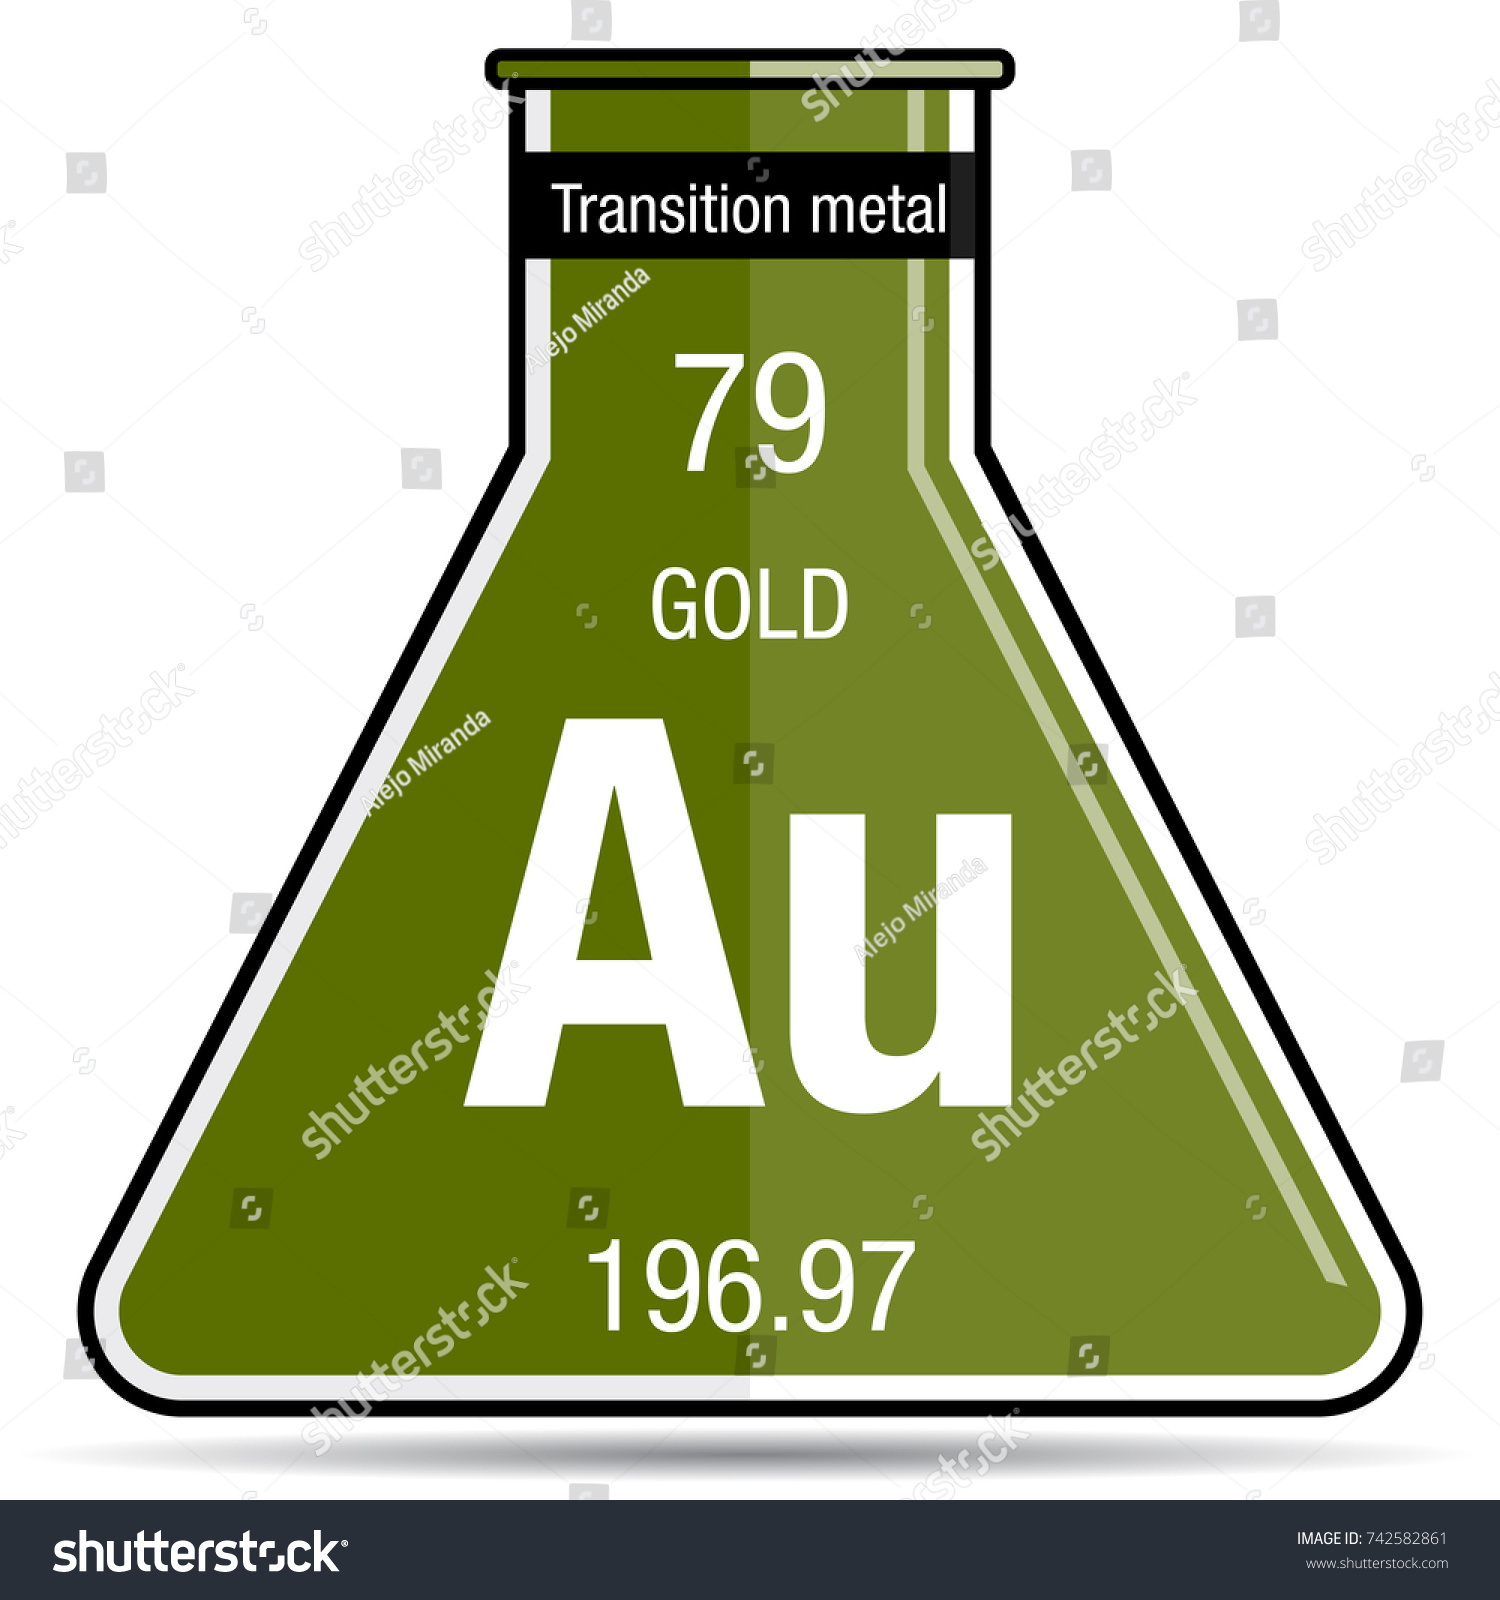 Gold symbol on periodic table image collections periodic table gold symbol on chemical flask element stock vector 742582861 gold symbol on chemical flask element number gamestrikefo Image collections